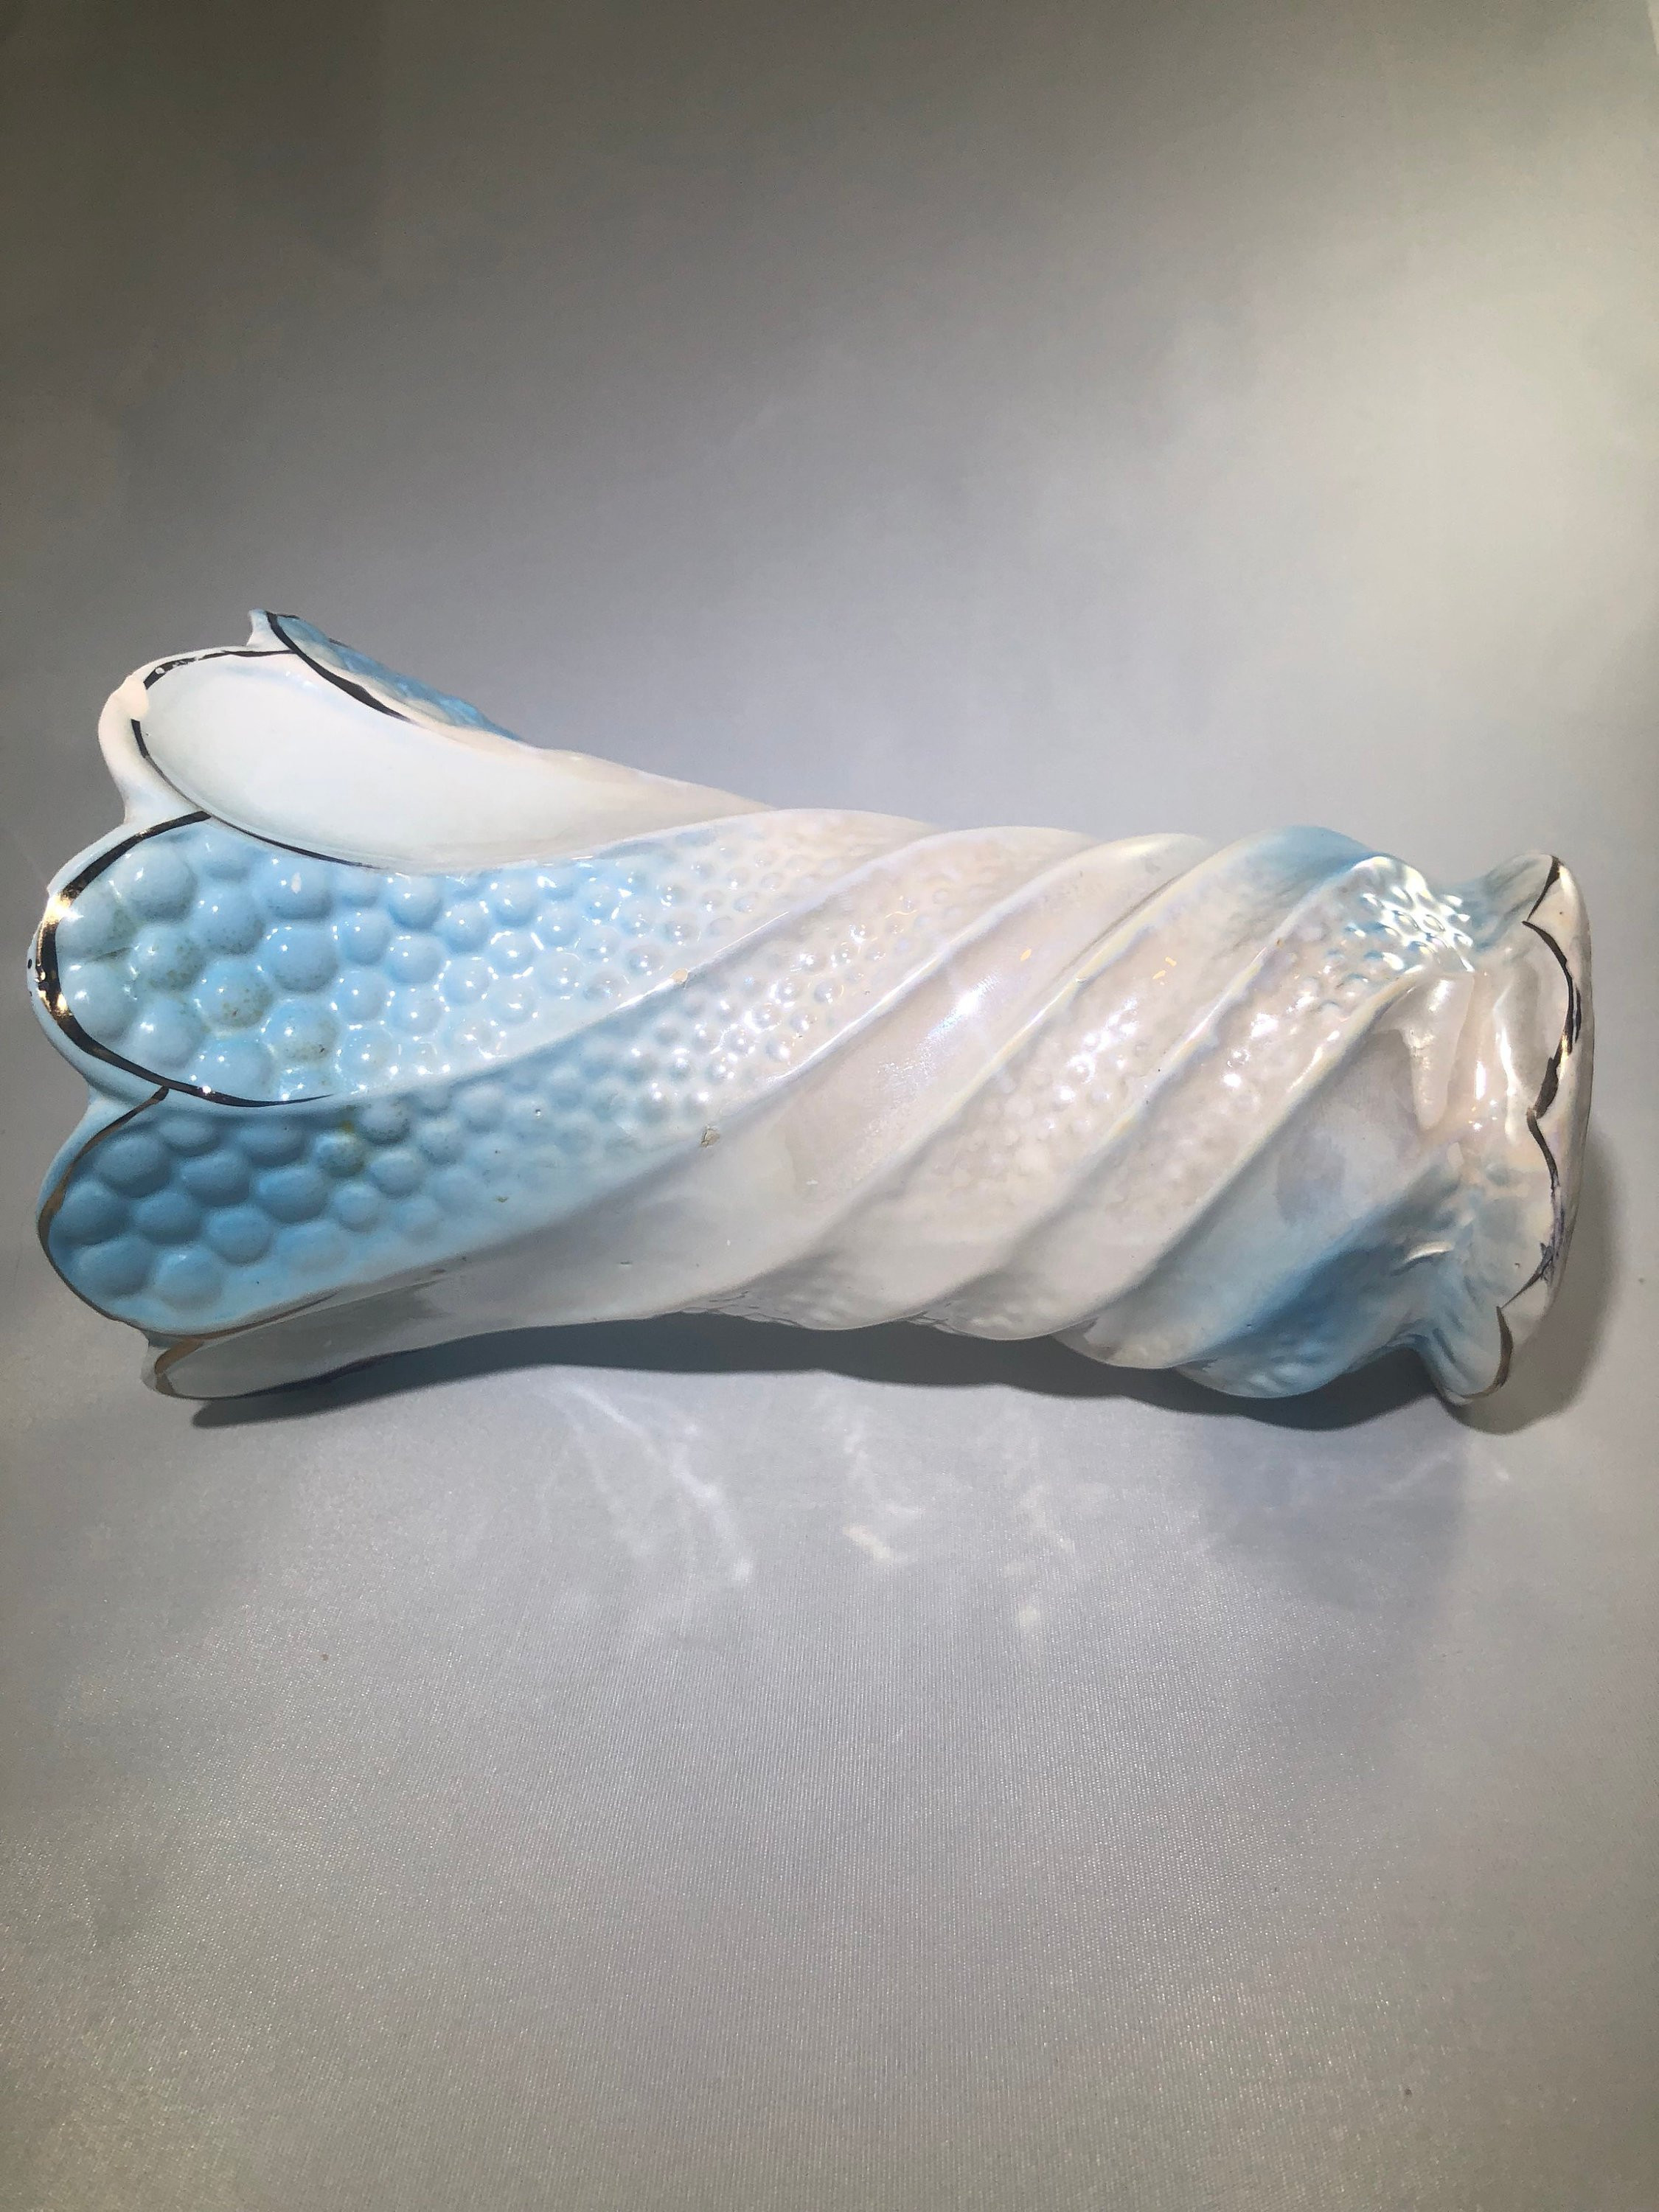 "turquoise ceramic mermaid vase of vintage iridescent mermaid tail ceramic vase flower planter inside dŸ""Žzoom"